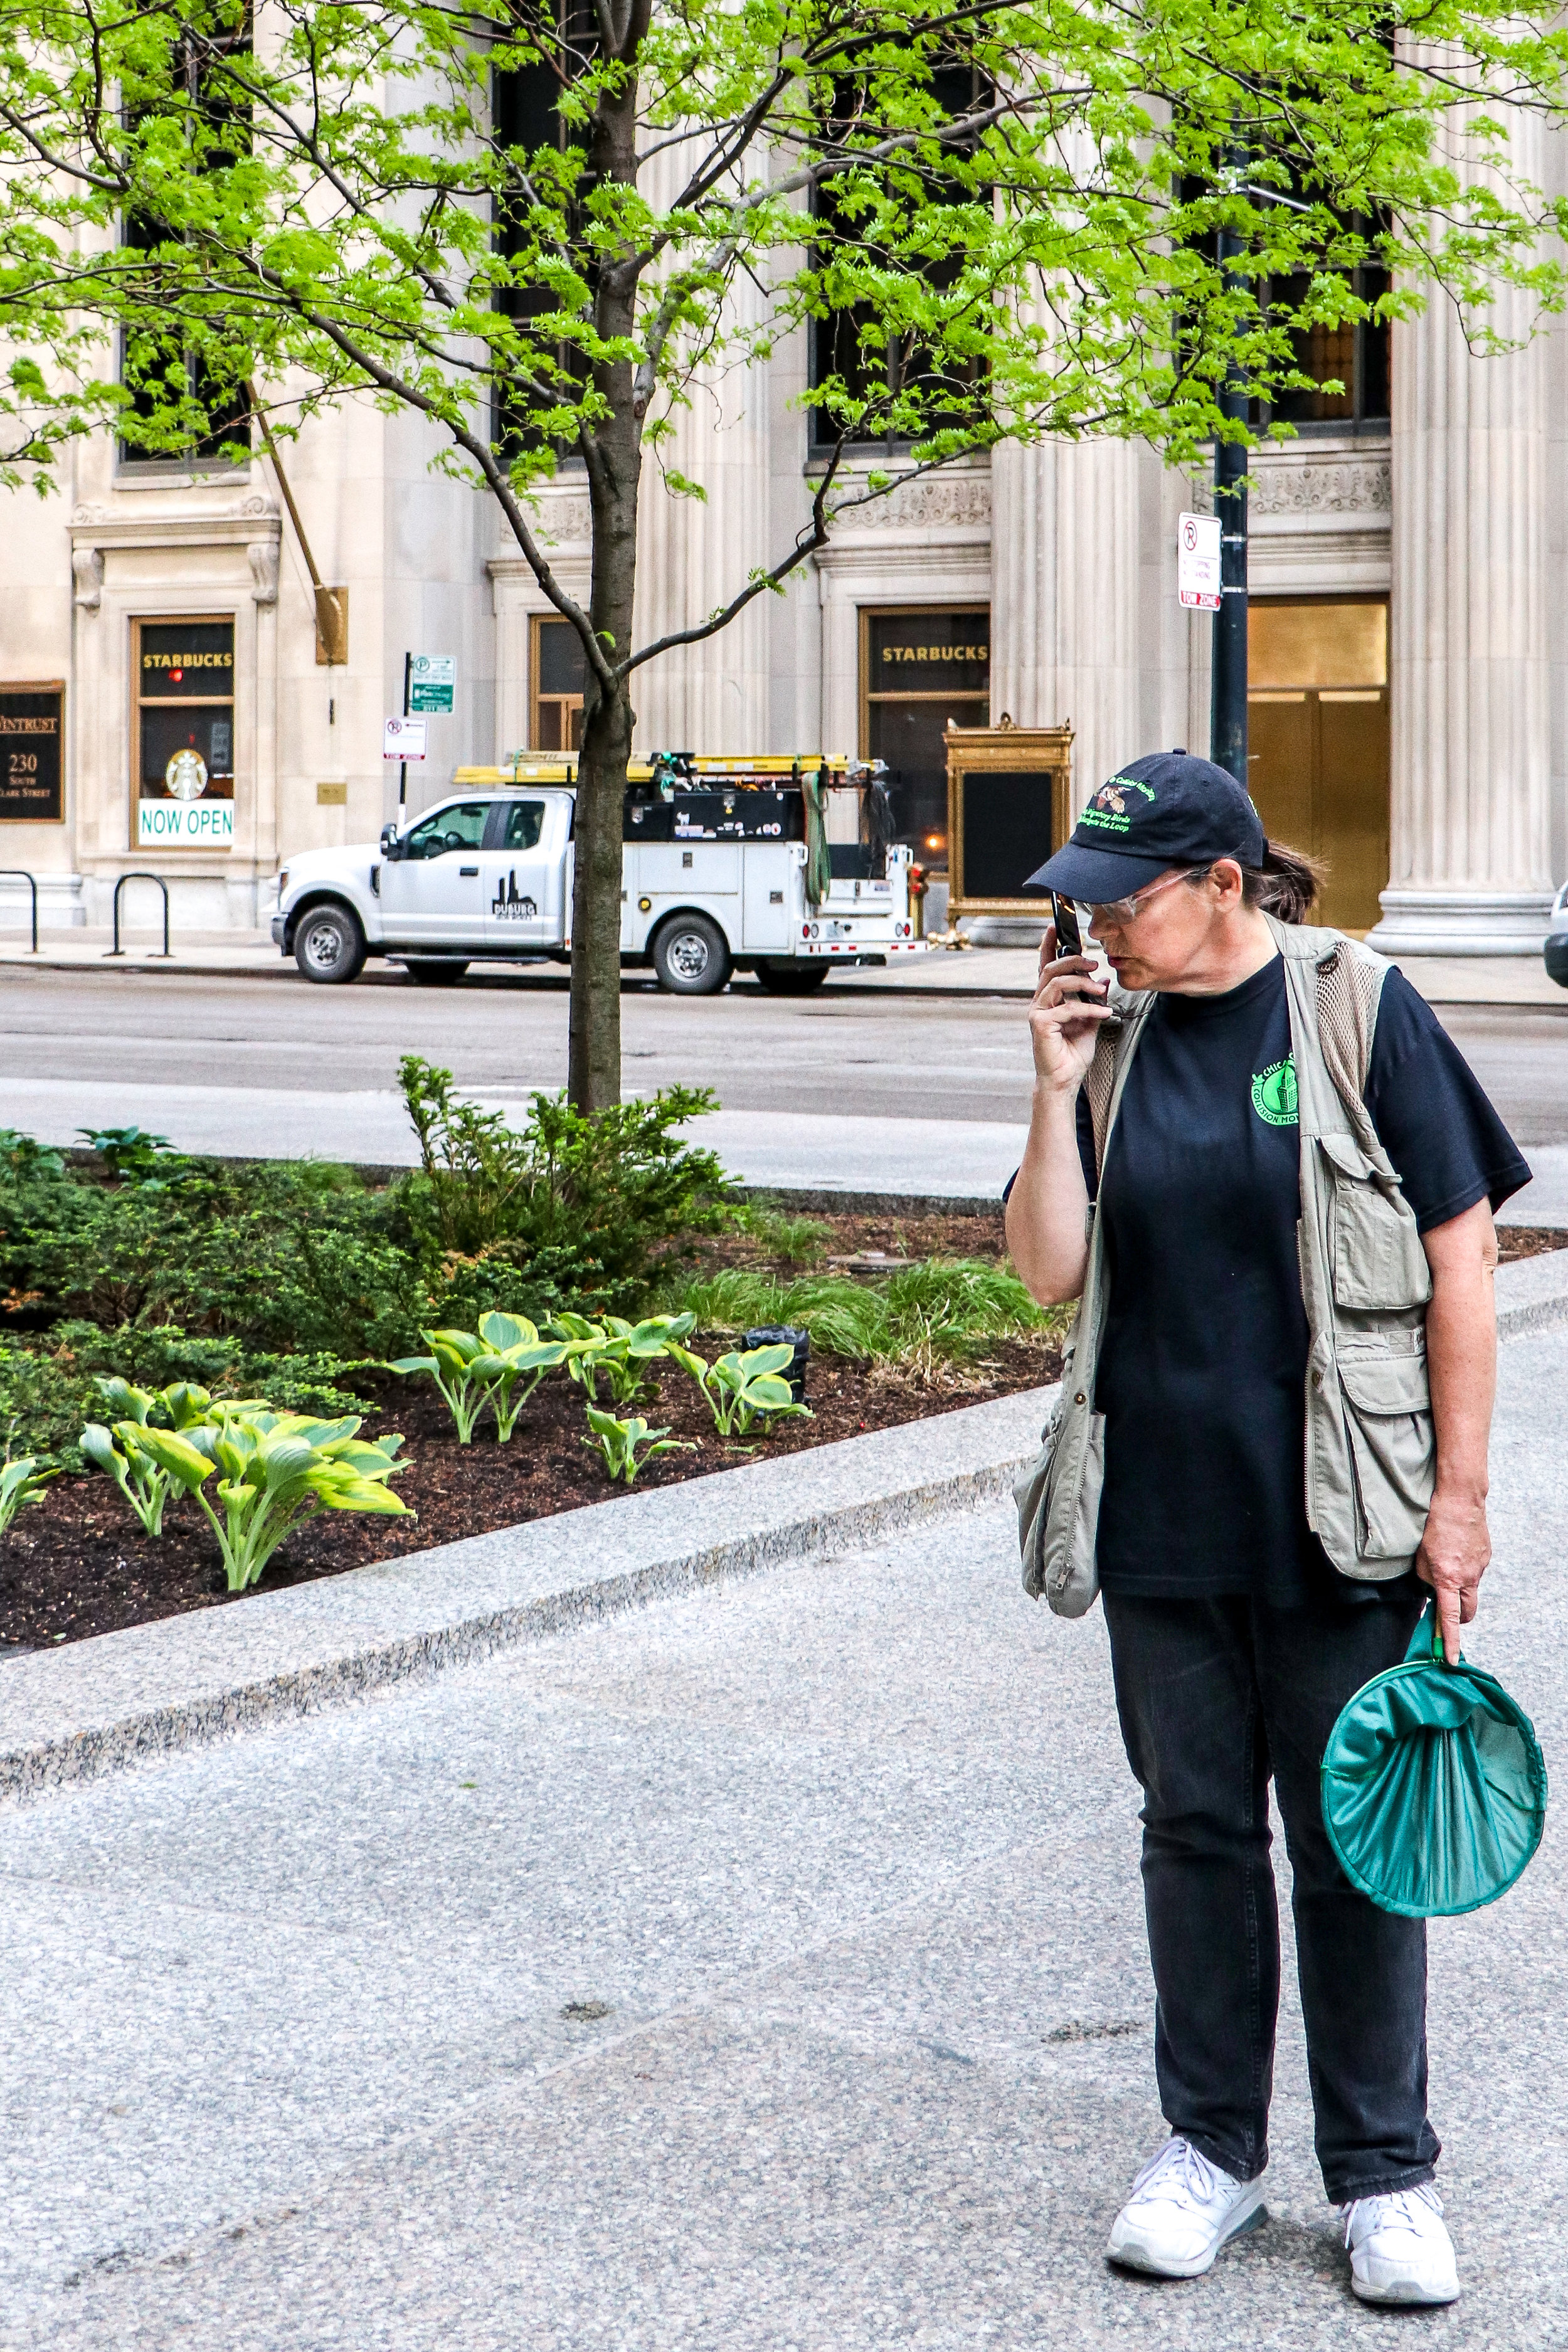 Annette Prince answers a call made to the Chicago Bird Collision Monitors about an injured bird in downtown Chicago.